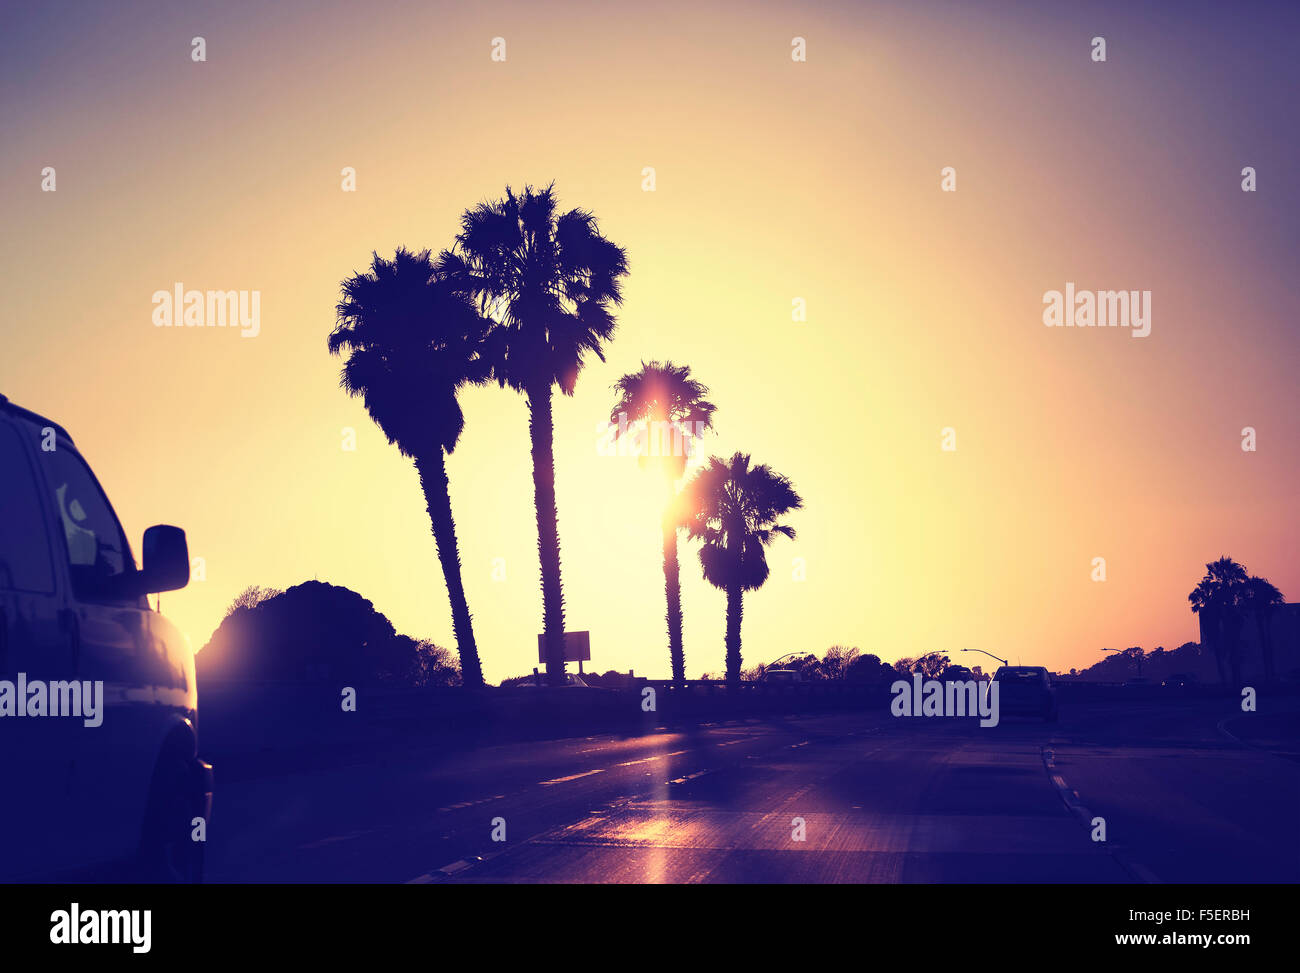 Vintage stylized picture of road against sunset, California, USA. - Stock Image